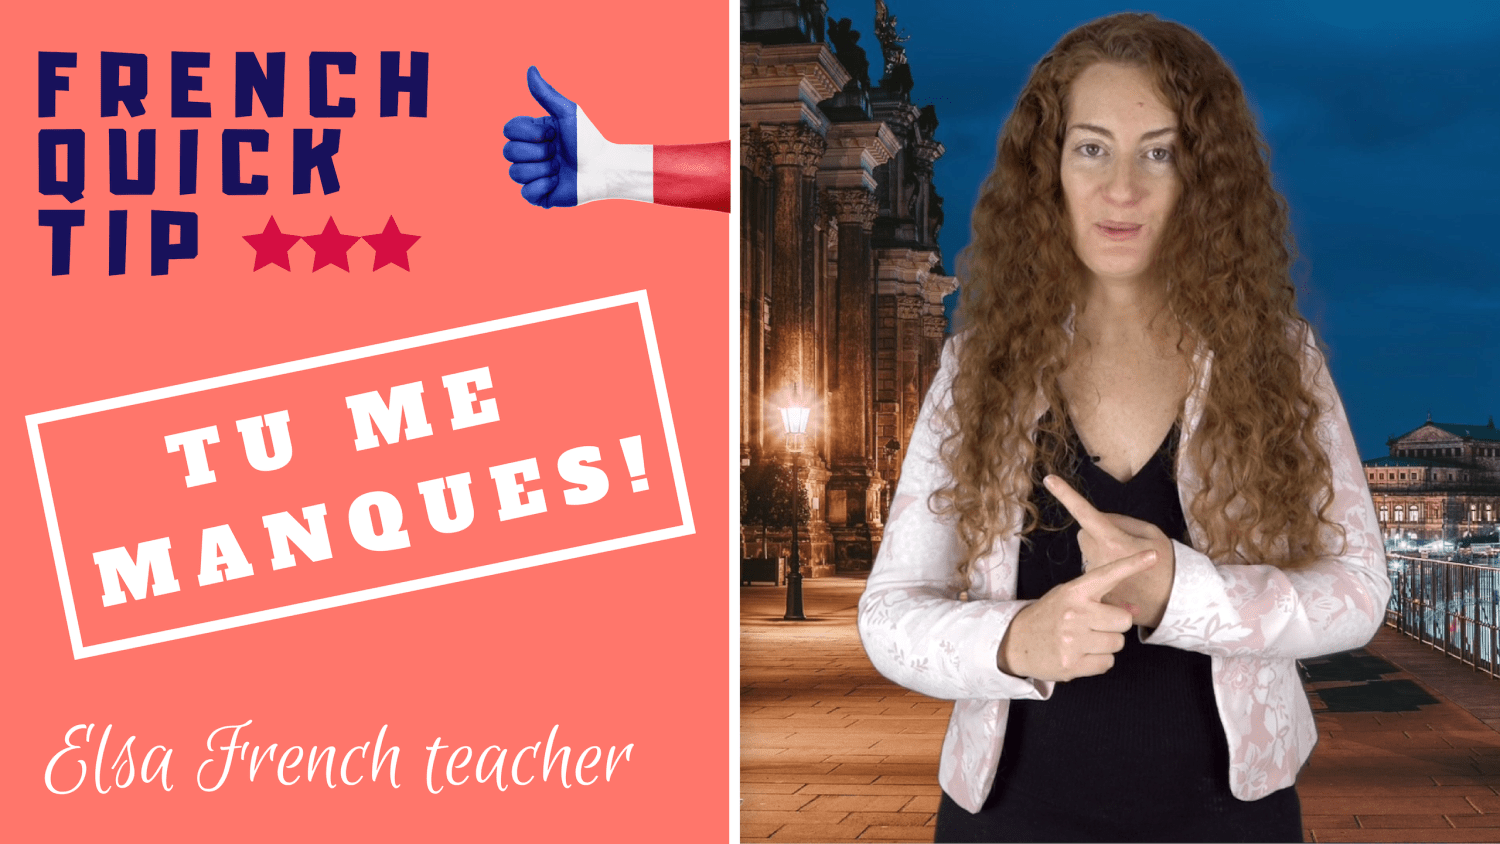 Learn how to use the verb manquer in French